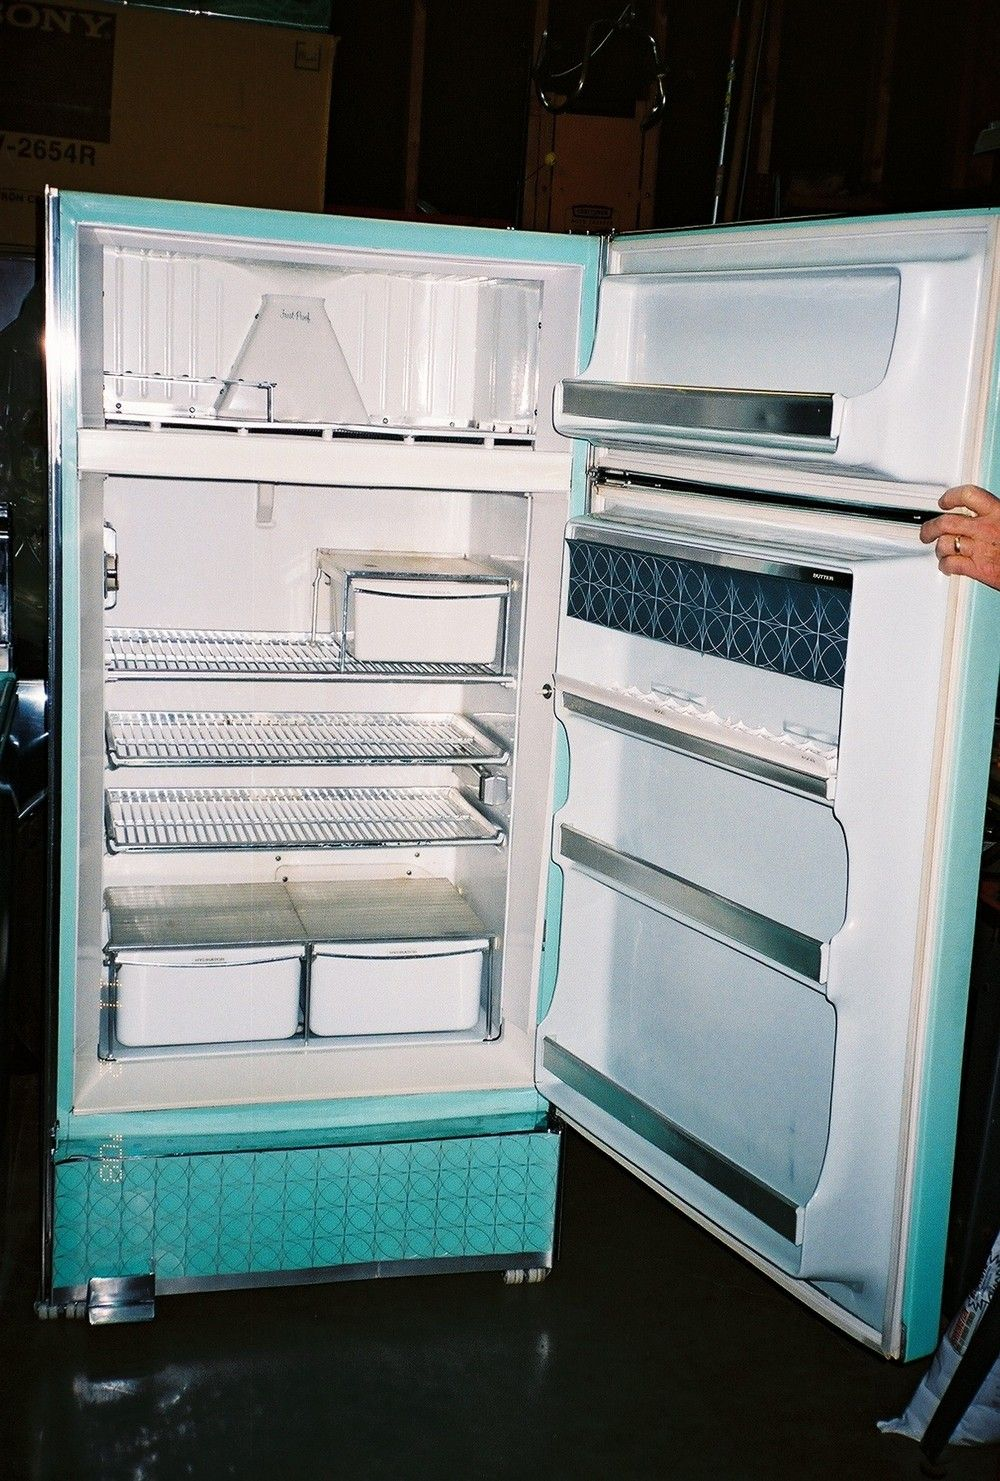 1960 Frigidaire Refrigerator Kitchen Makeover Ideas